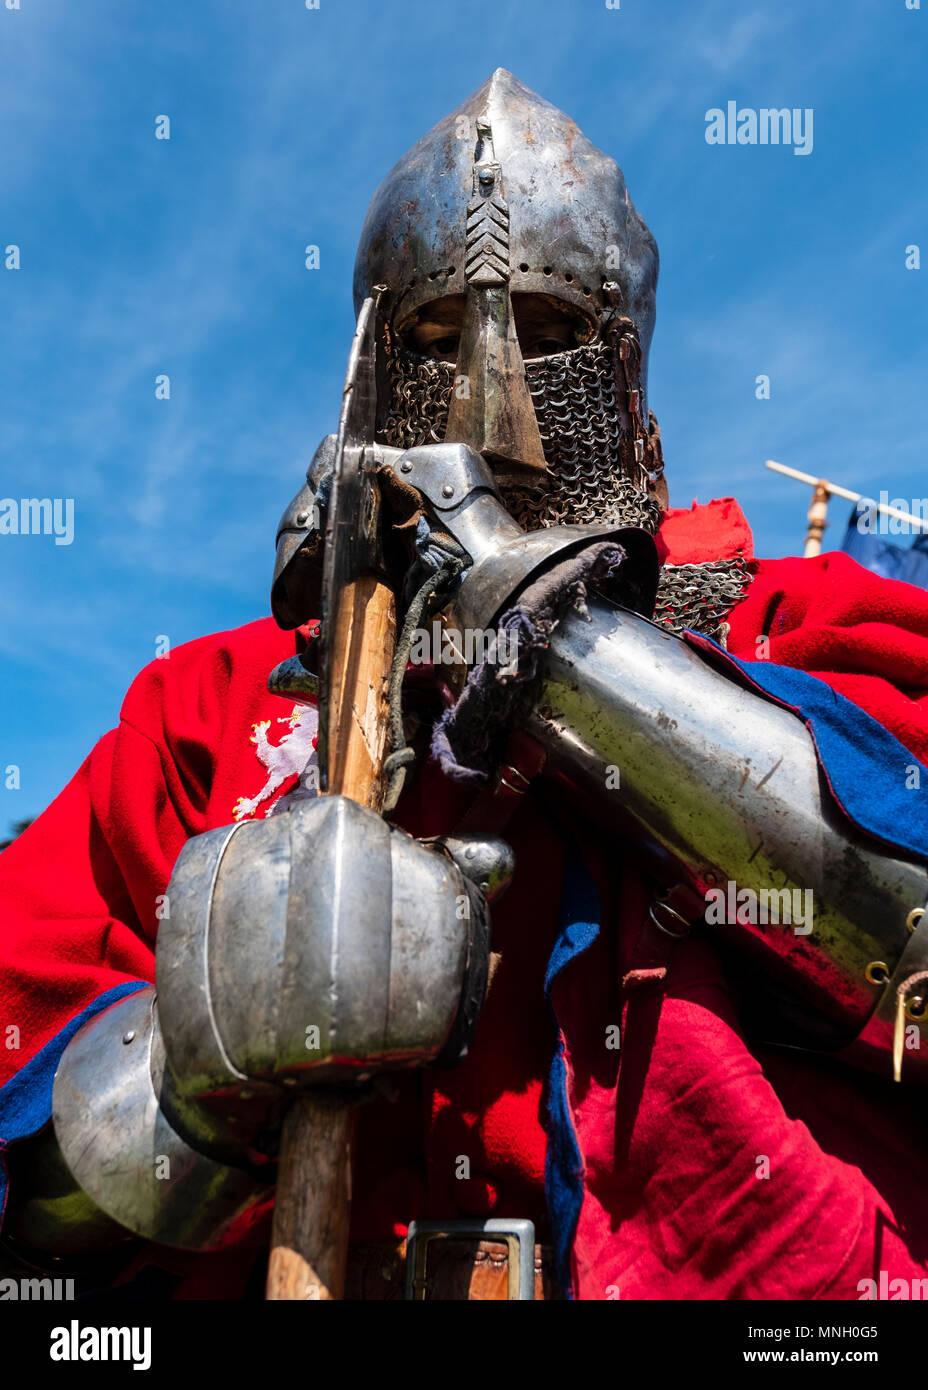 English knight portrait during the  International Medieval Combat Federation (IMCF) World Championships  at Scone Palace on May 12, 2018 at Scone Pala - Stock Image